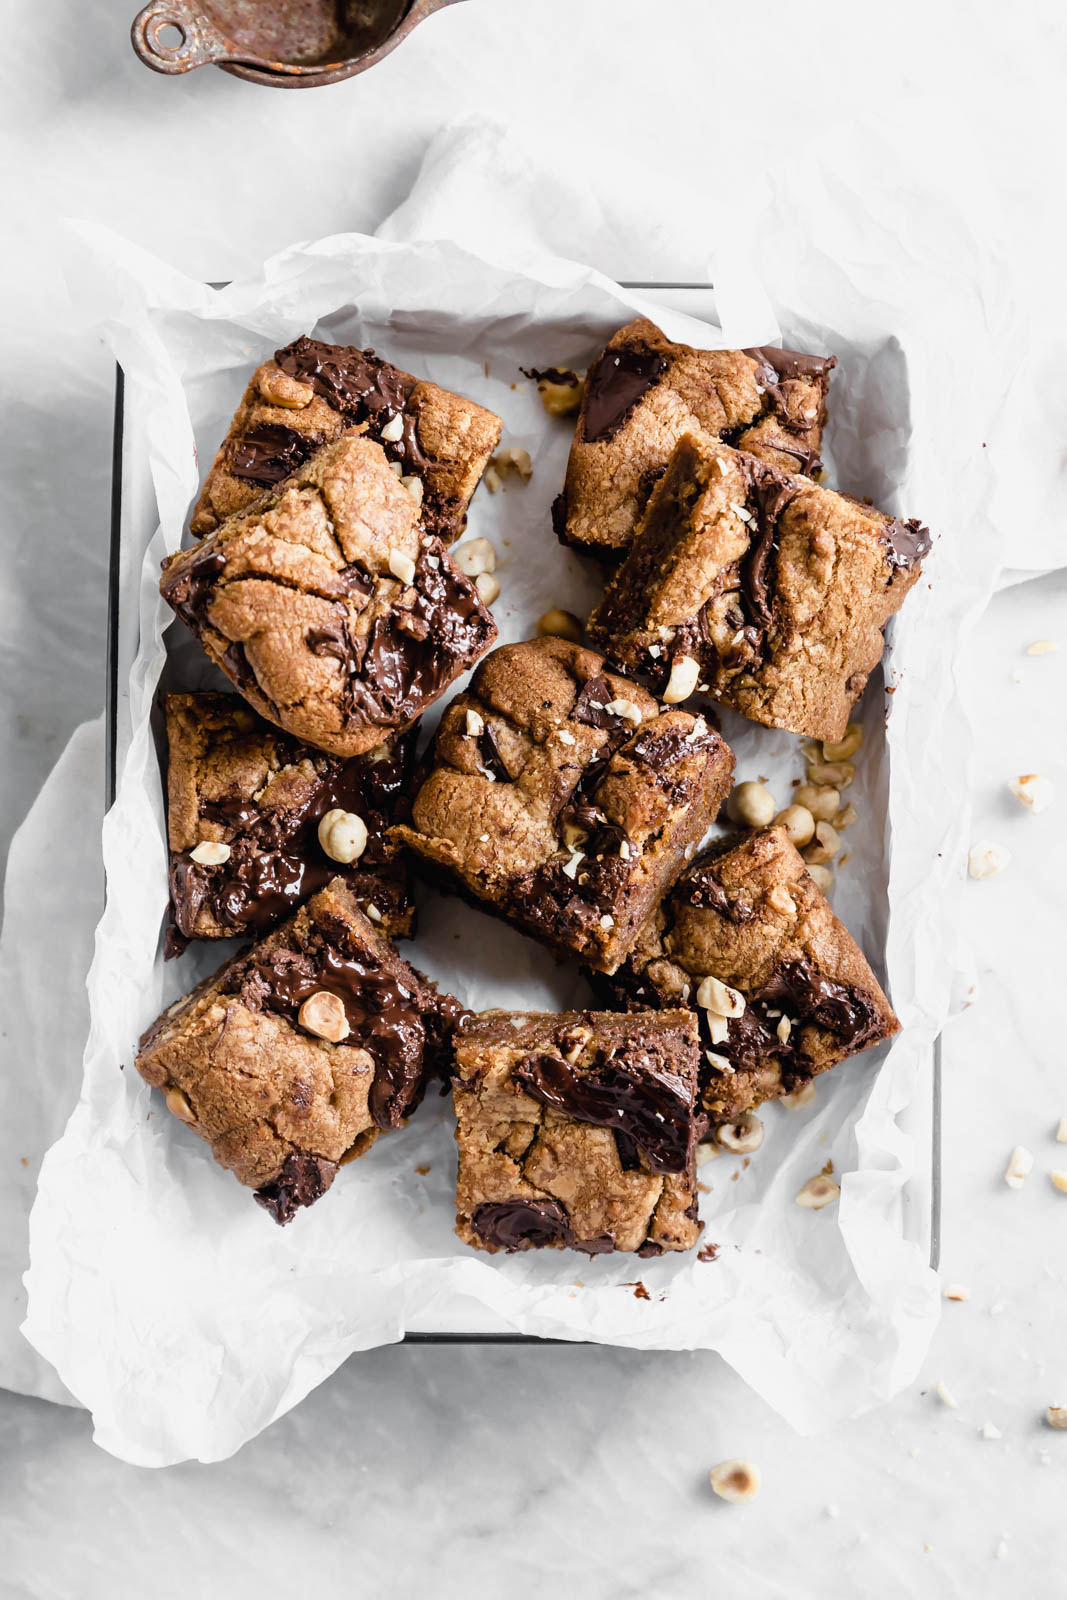 Brown Butter Nutella Chocolate Chip Cookie Bars